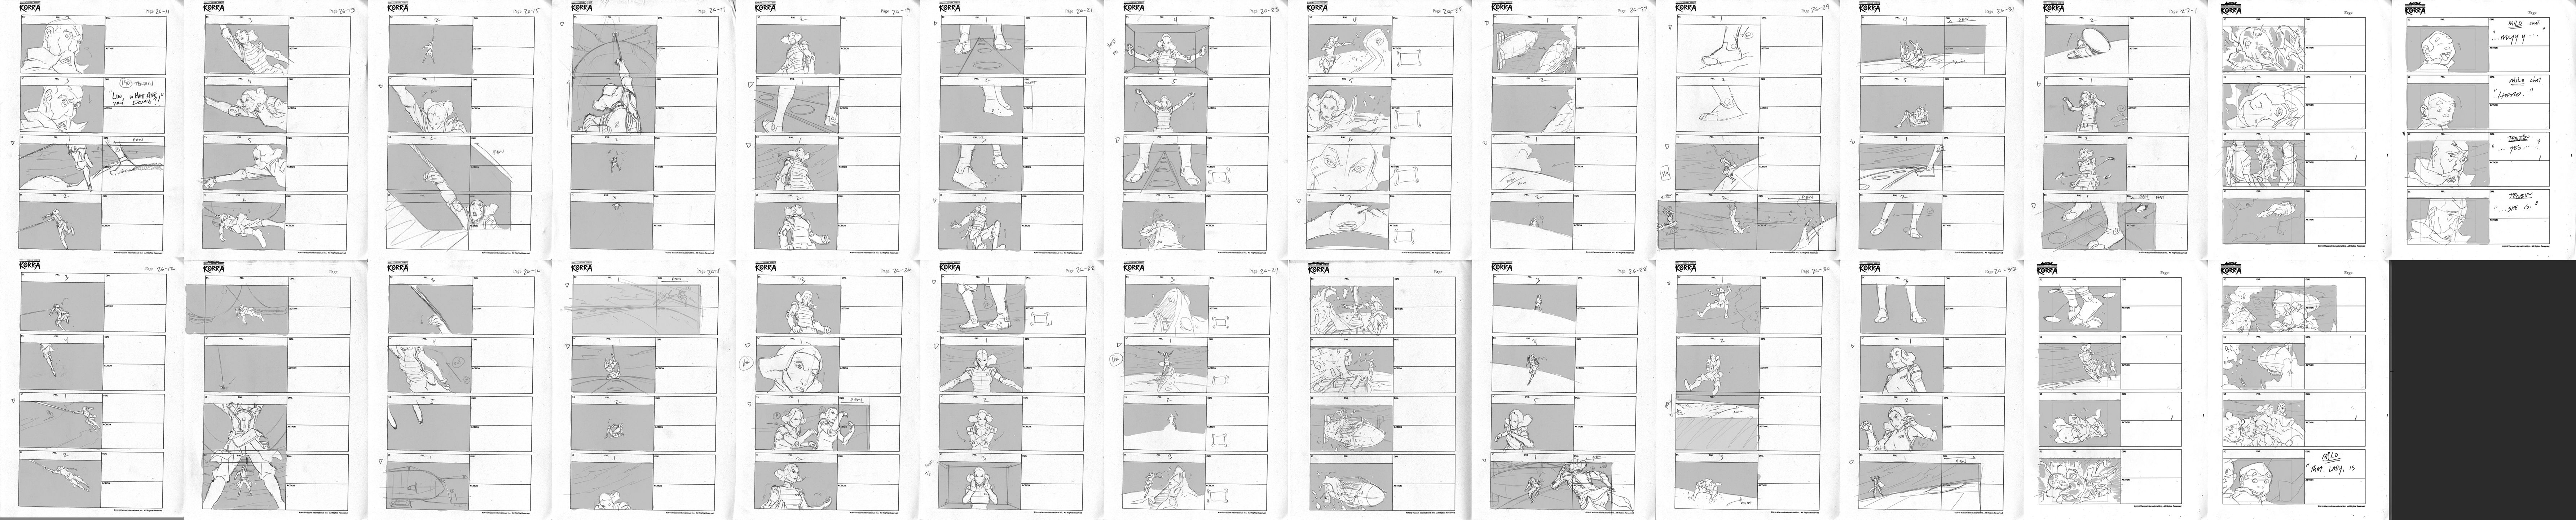 Legend Of Korra Turning The Tides Storyboards By Leseanthomas